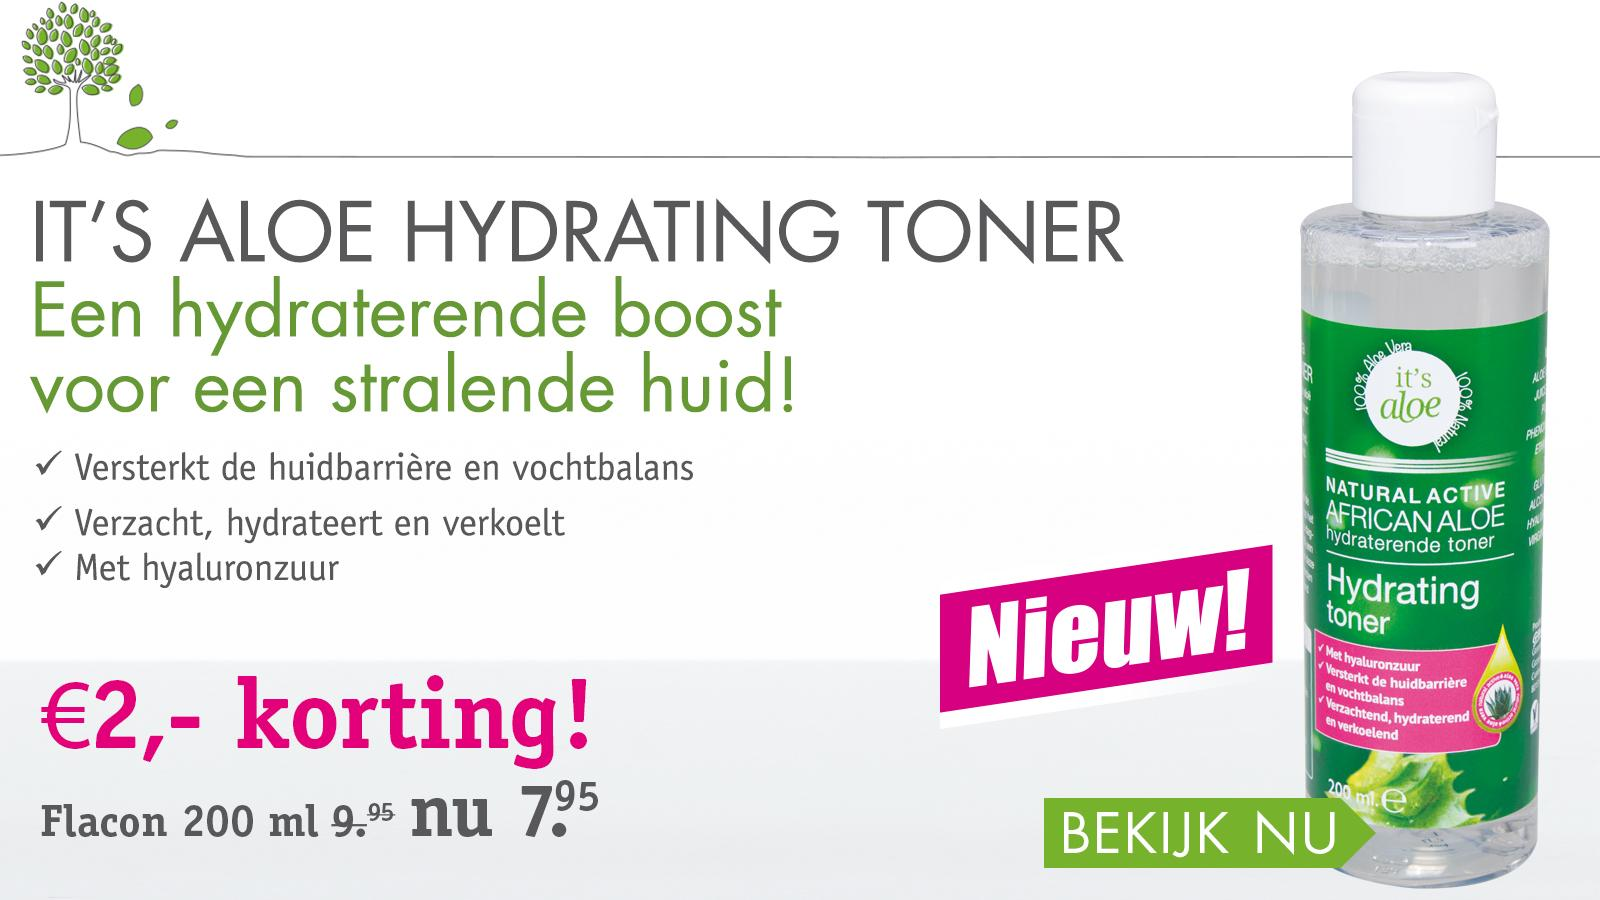 aaloe toner-Week-27-GW-BANNER-HOME-MAIN-1600x900-03